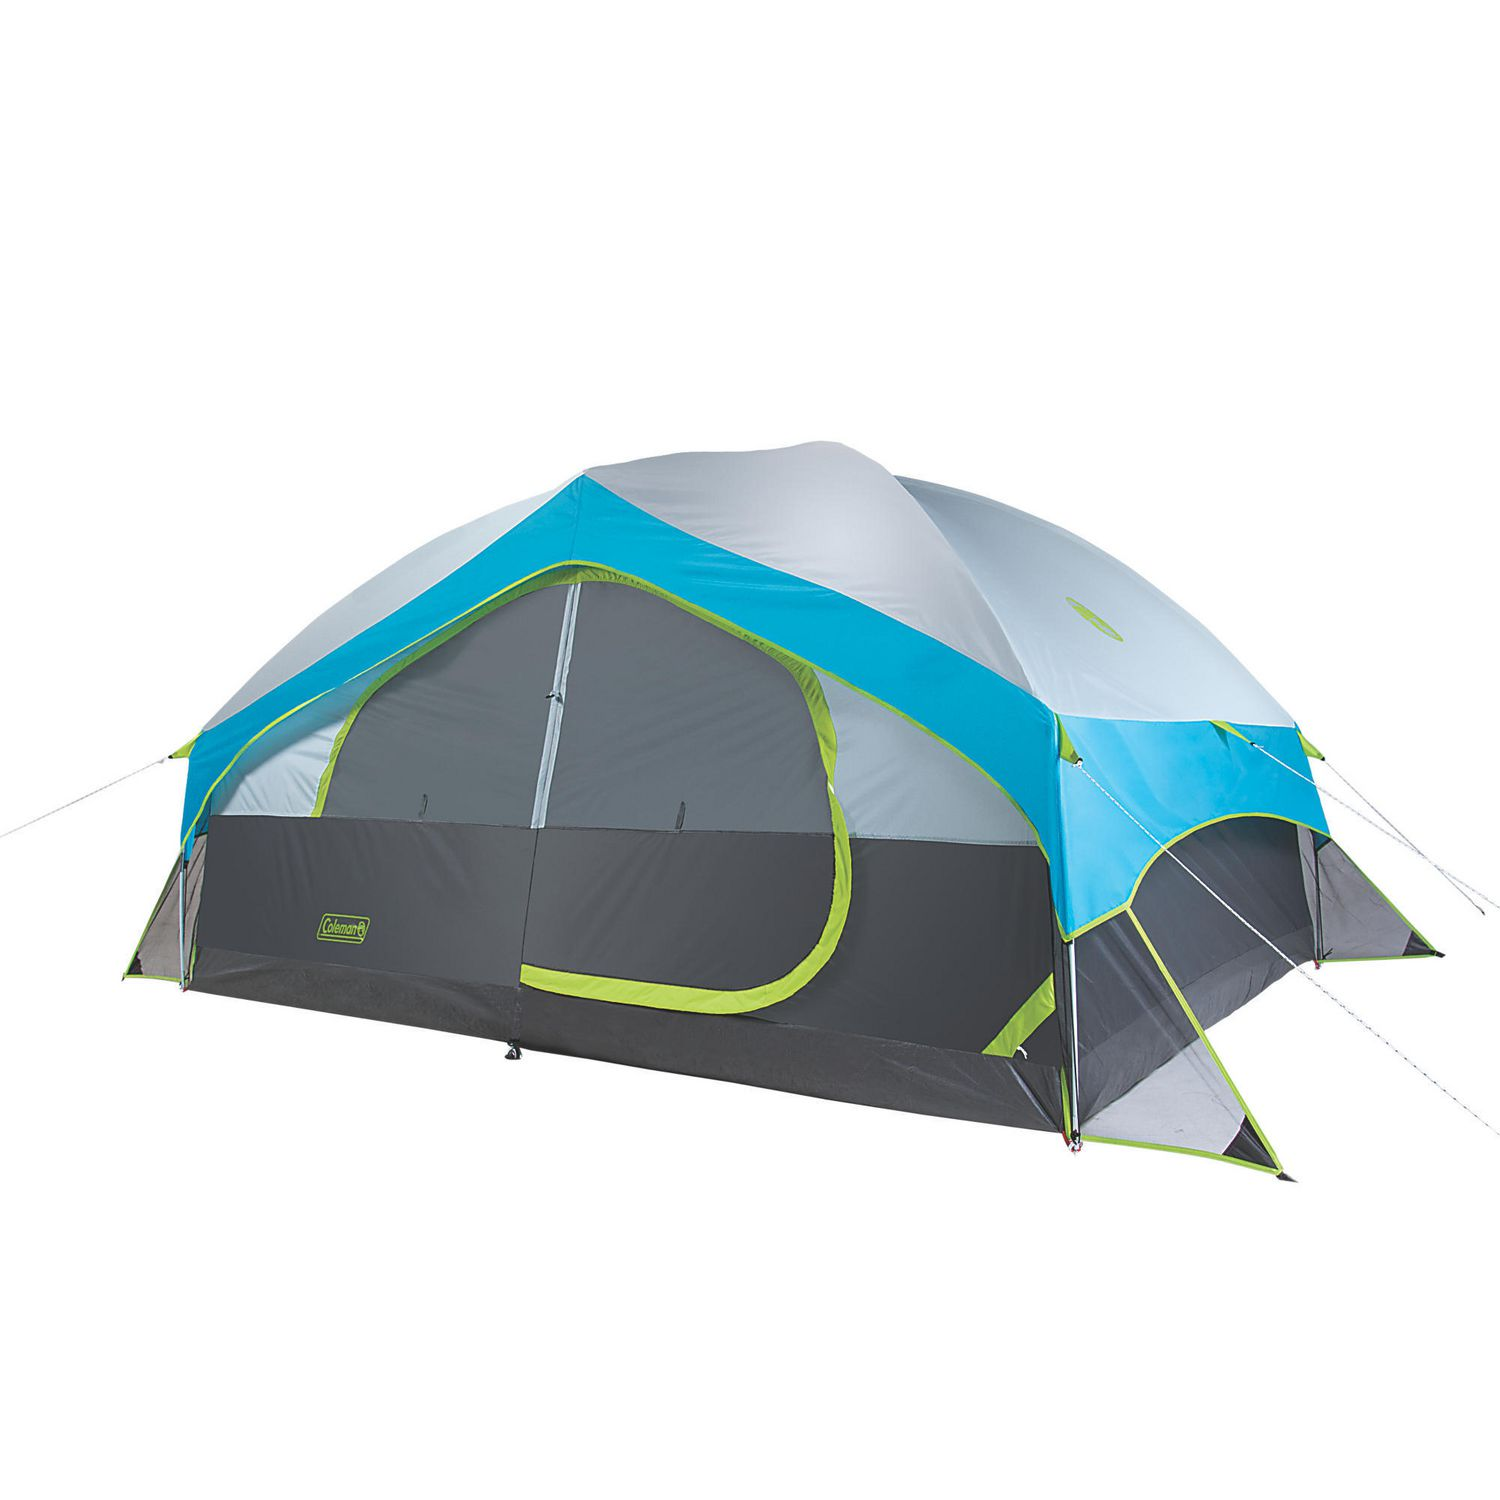 c0297f465d6 Coleman® Grand Valley™ 4 Person Tent - image 1 of 6 zoomed image